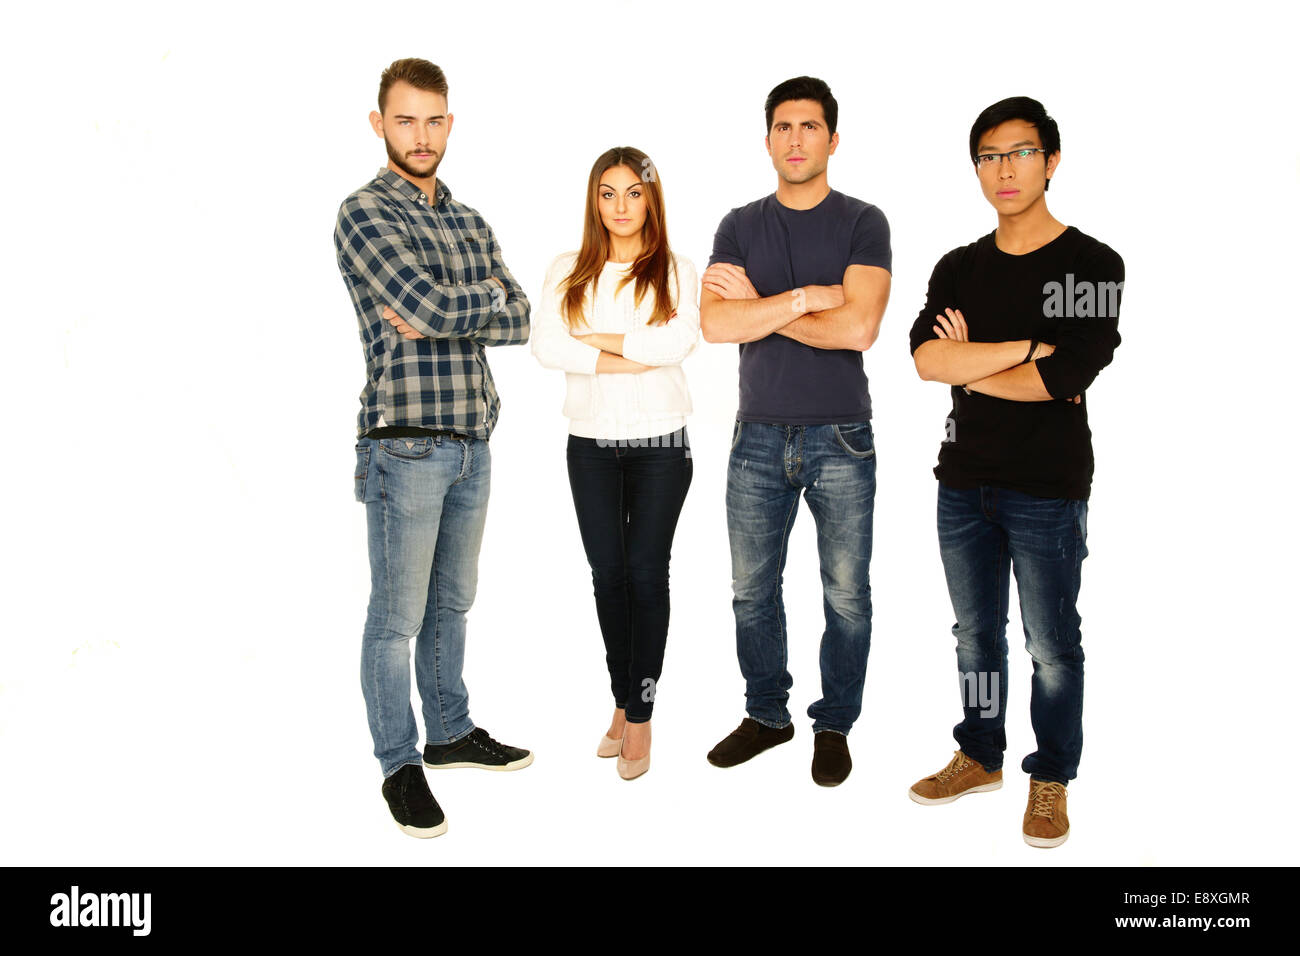 Full length portrait of a friends in casual cloth over white background - Stock Image